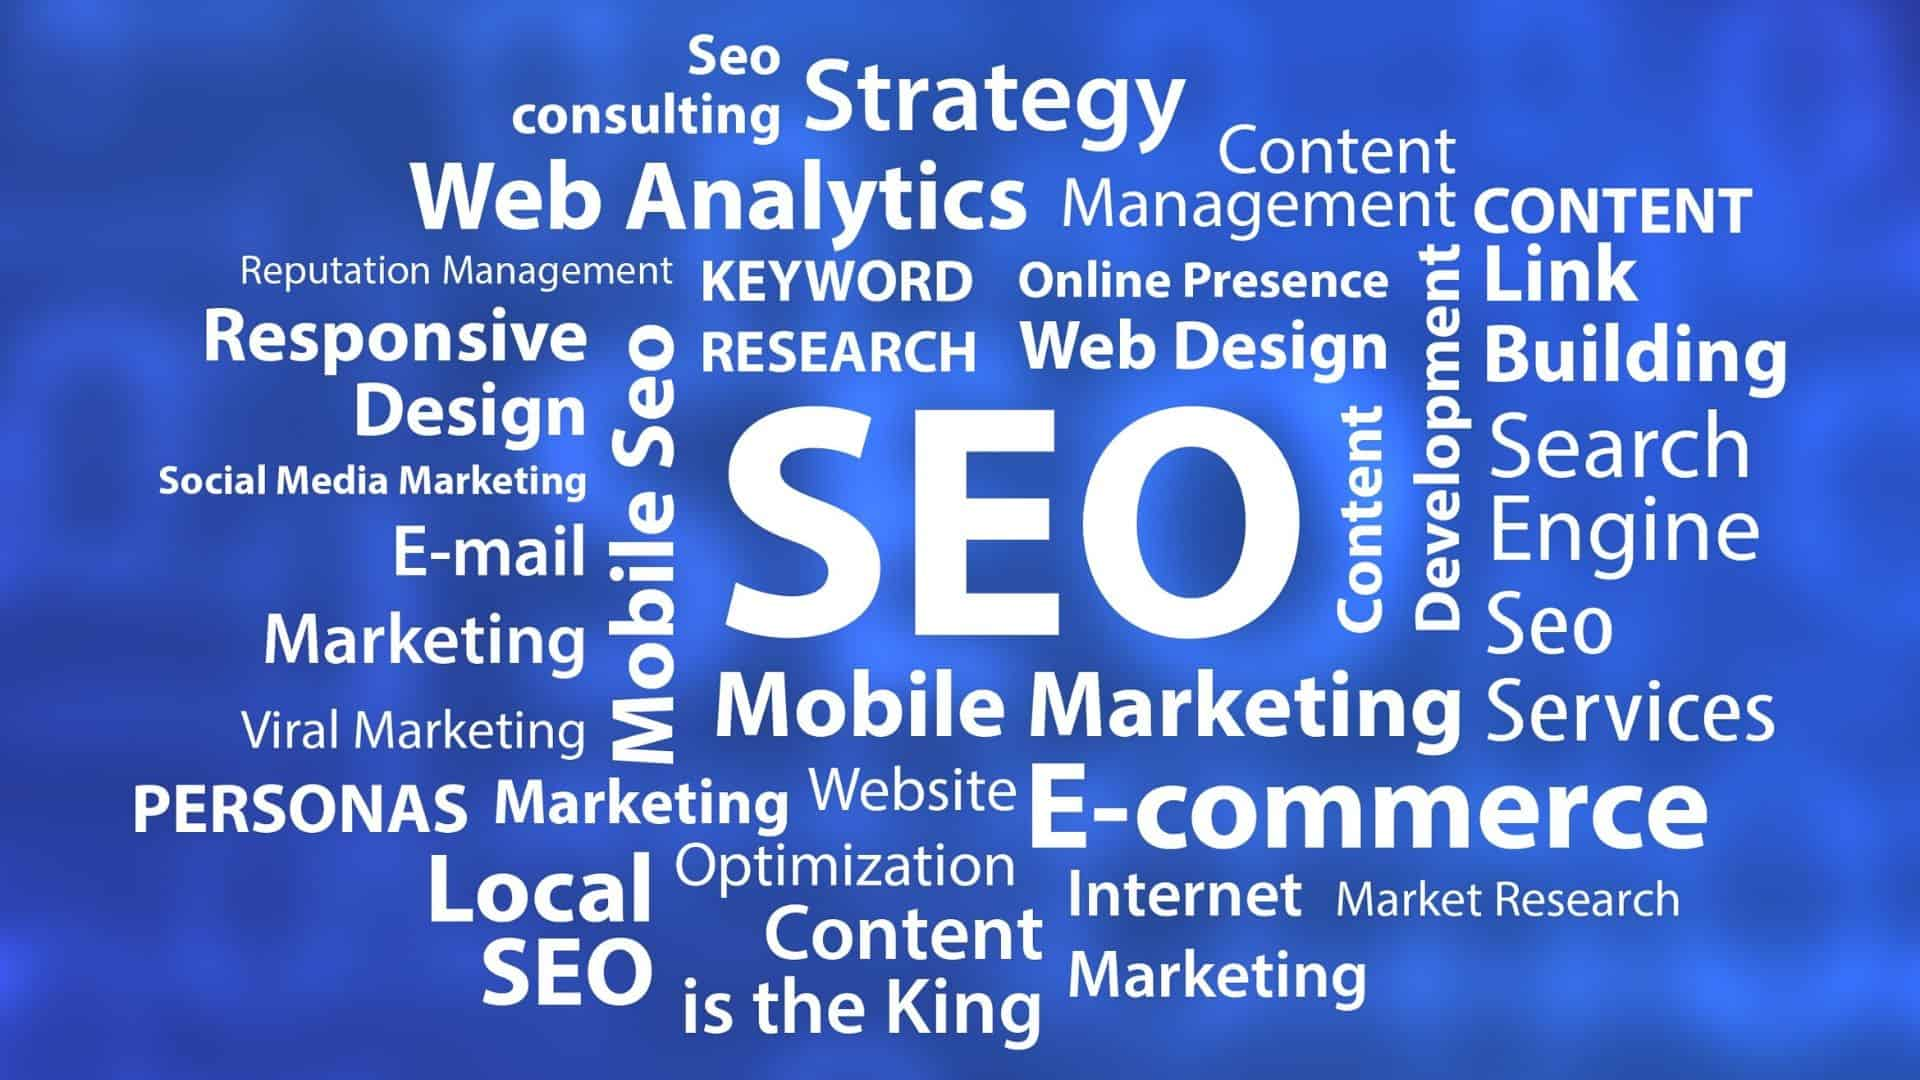 Why is SEO significant and how does it affect your business?